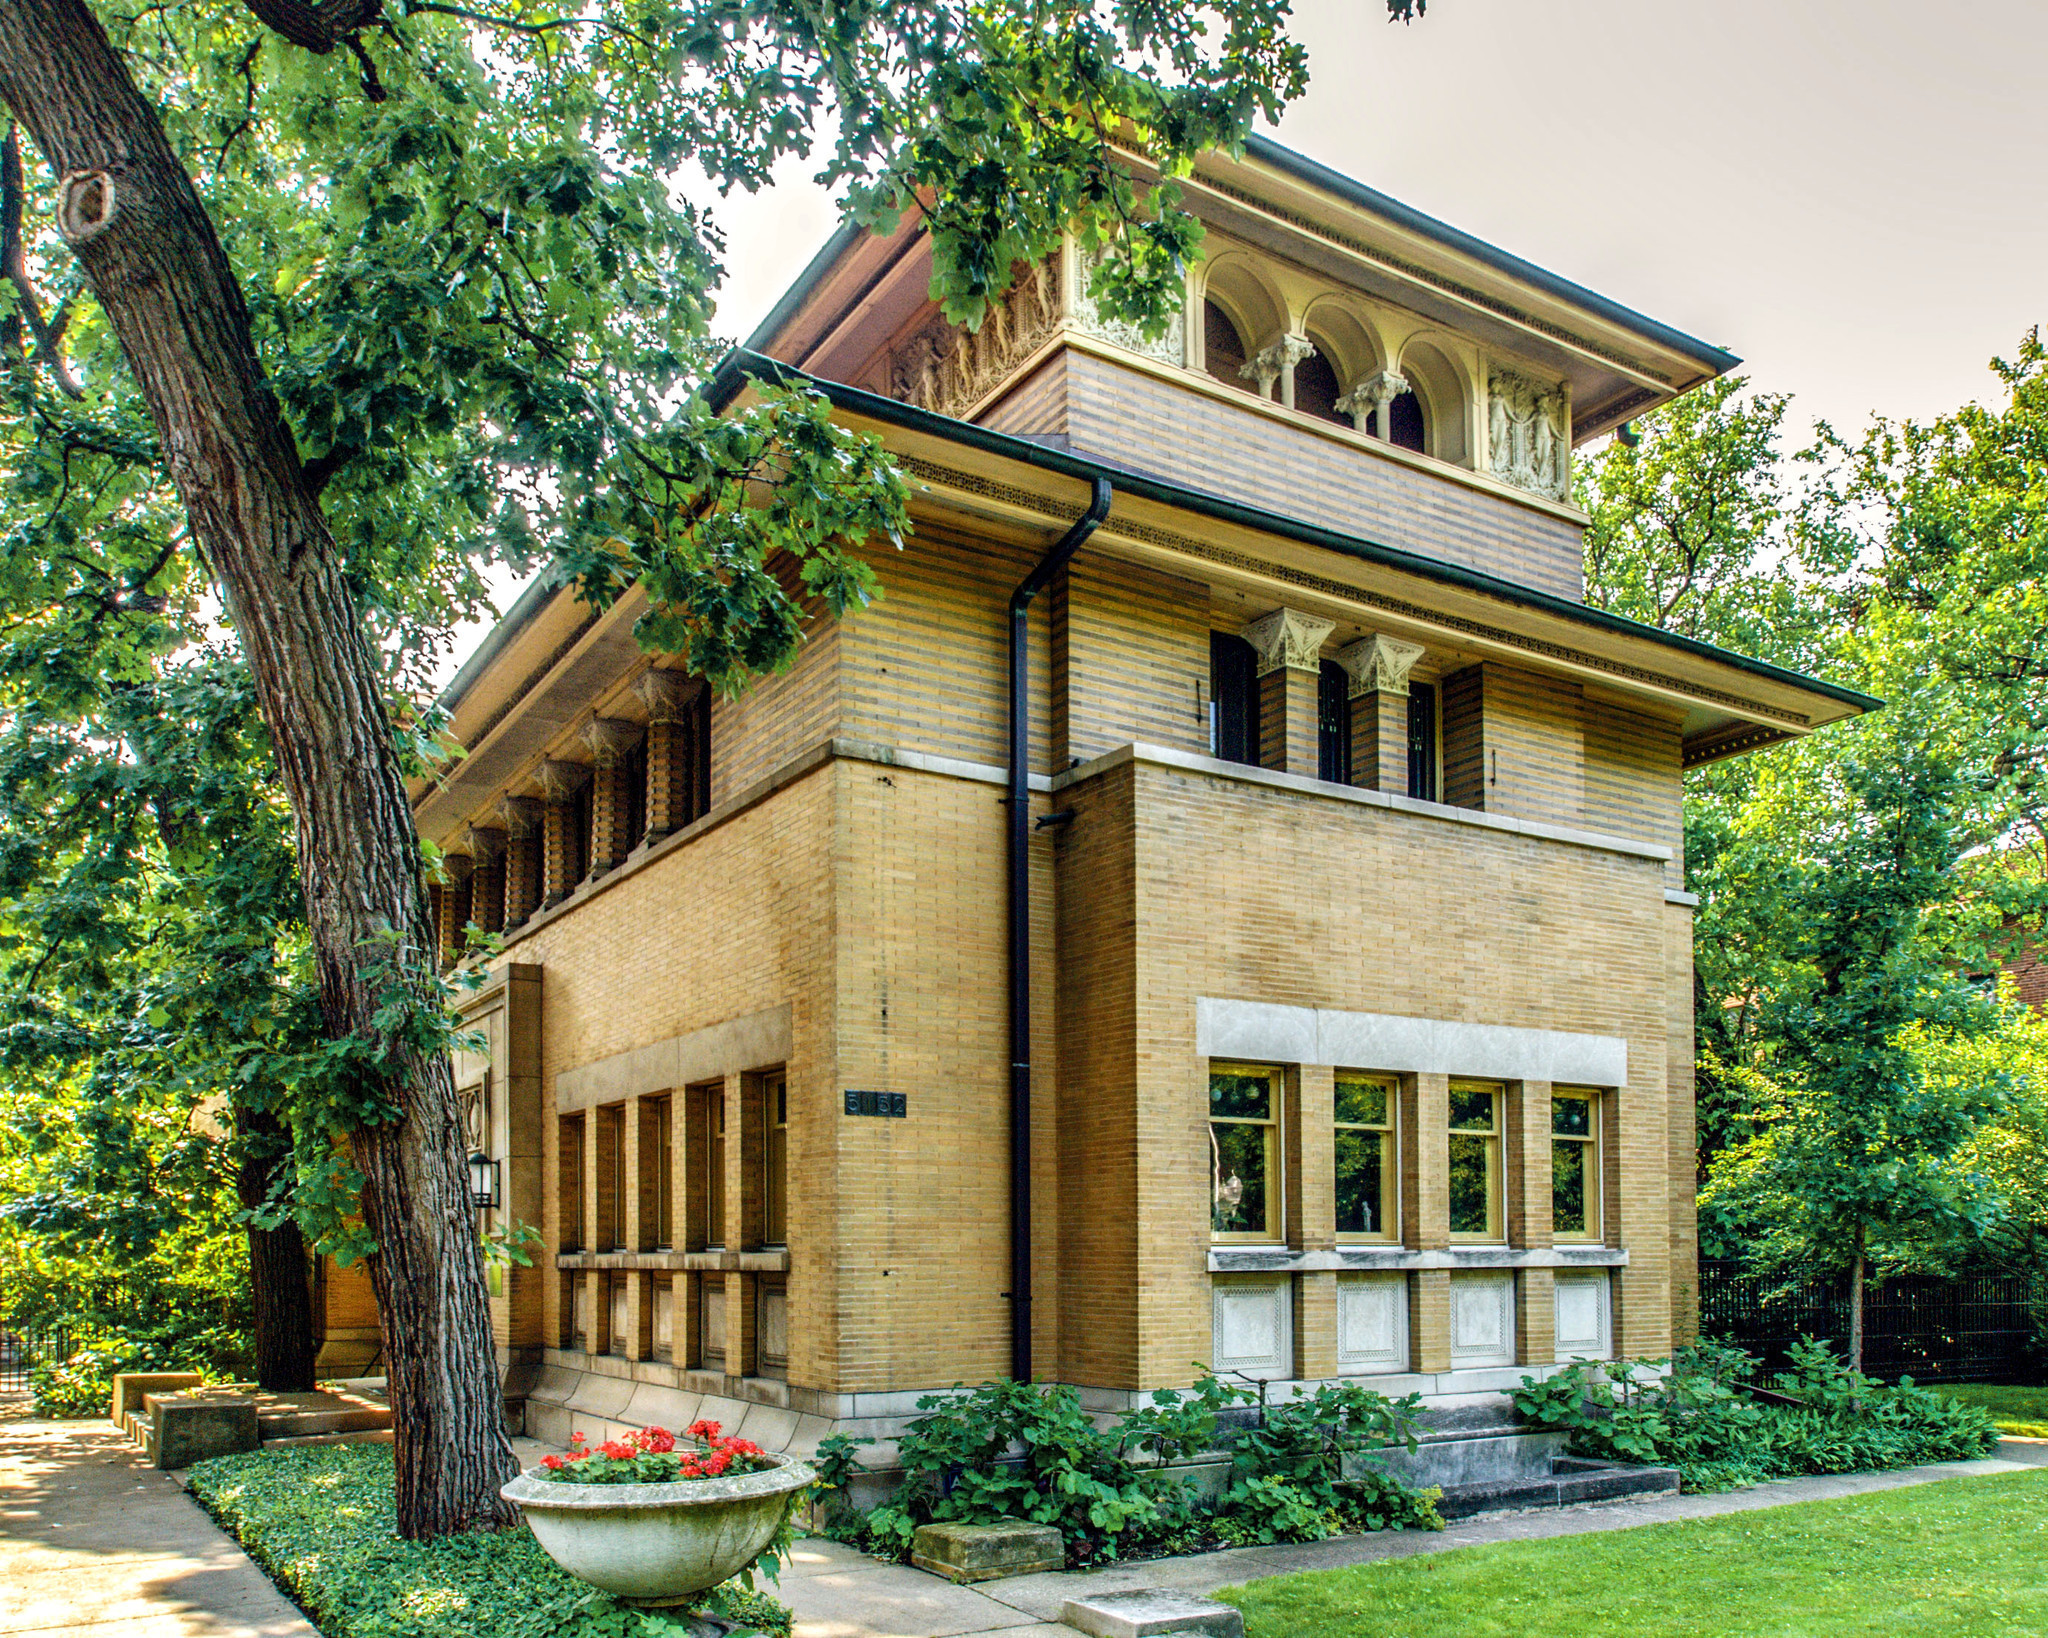 Frank Lloyd Wright 39 S Heller House For Sale Again In Hyde